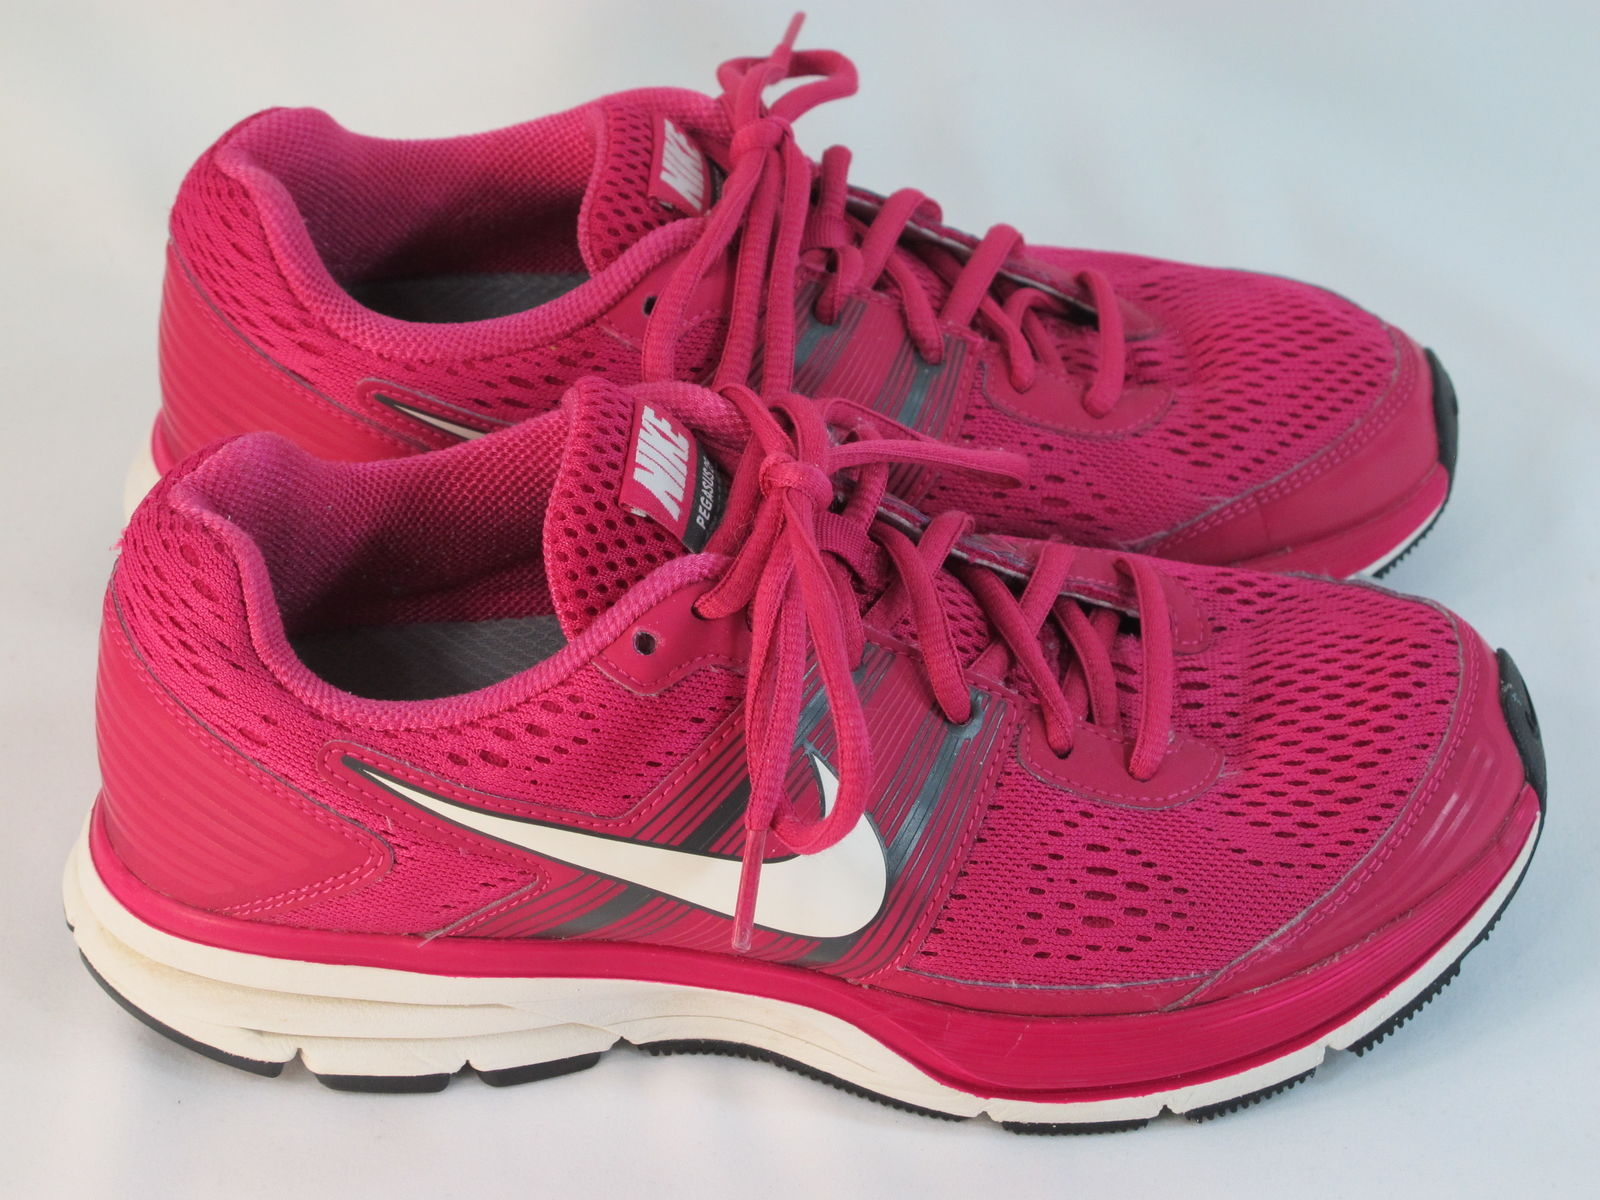 705ae7e5cc21c Nike Air Zoom Pegasus+ 29 Running Shoes and 26 similar items